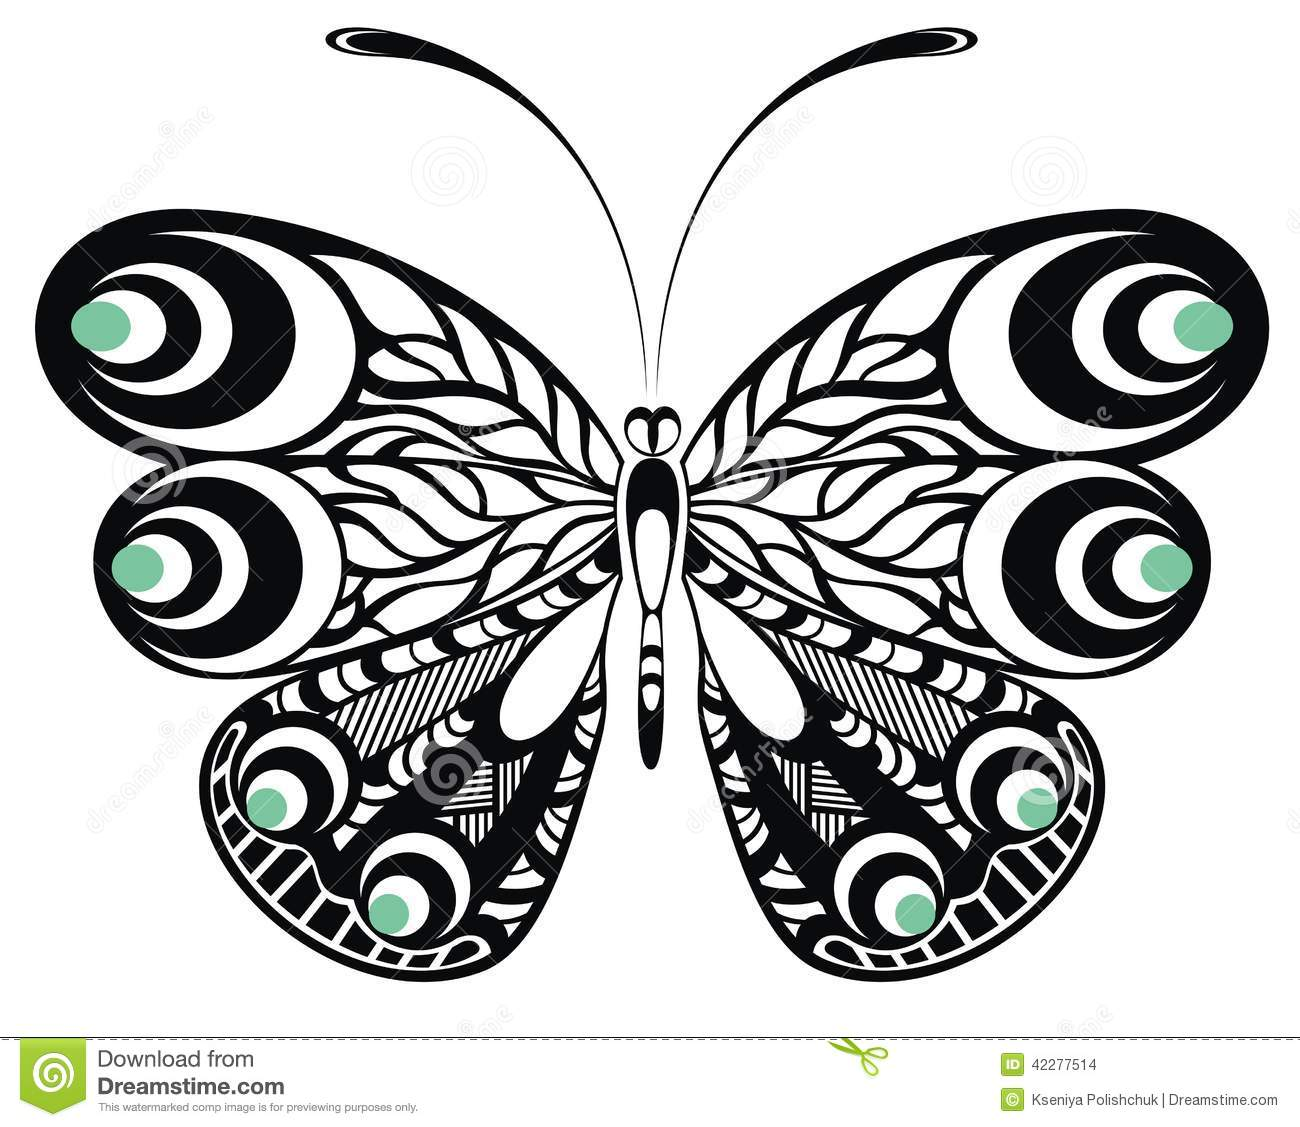 butterfly tattoo design stock vector illustration of fantasy 42277514. Black Bedroom Furniture Sets. Home Design Ideas